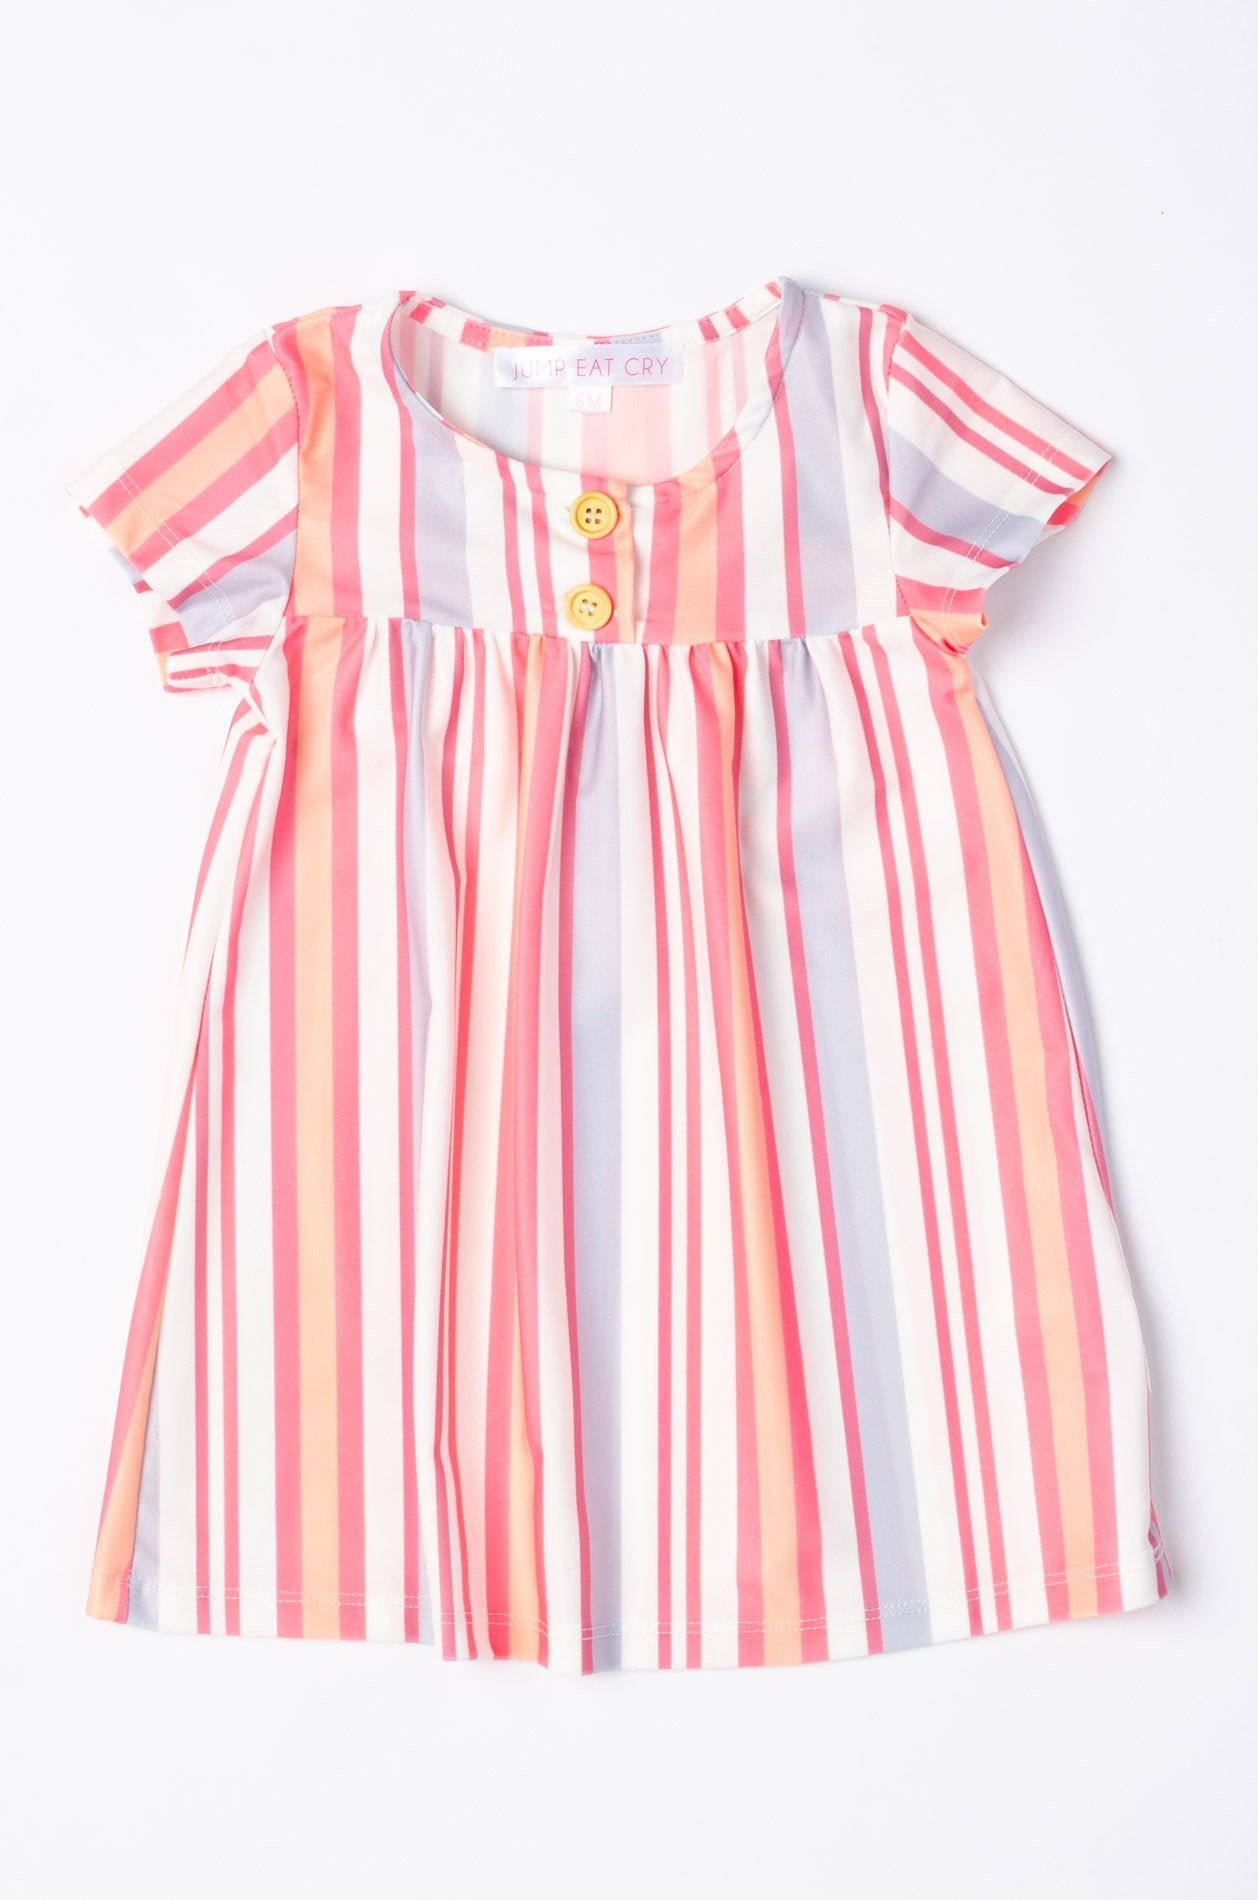 Juliet Rainbow Stripes Girl Dress  by Jump Eat Cry - Maternity and nursing wear